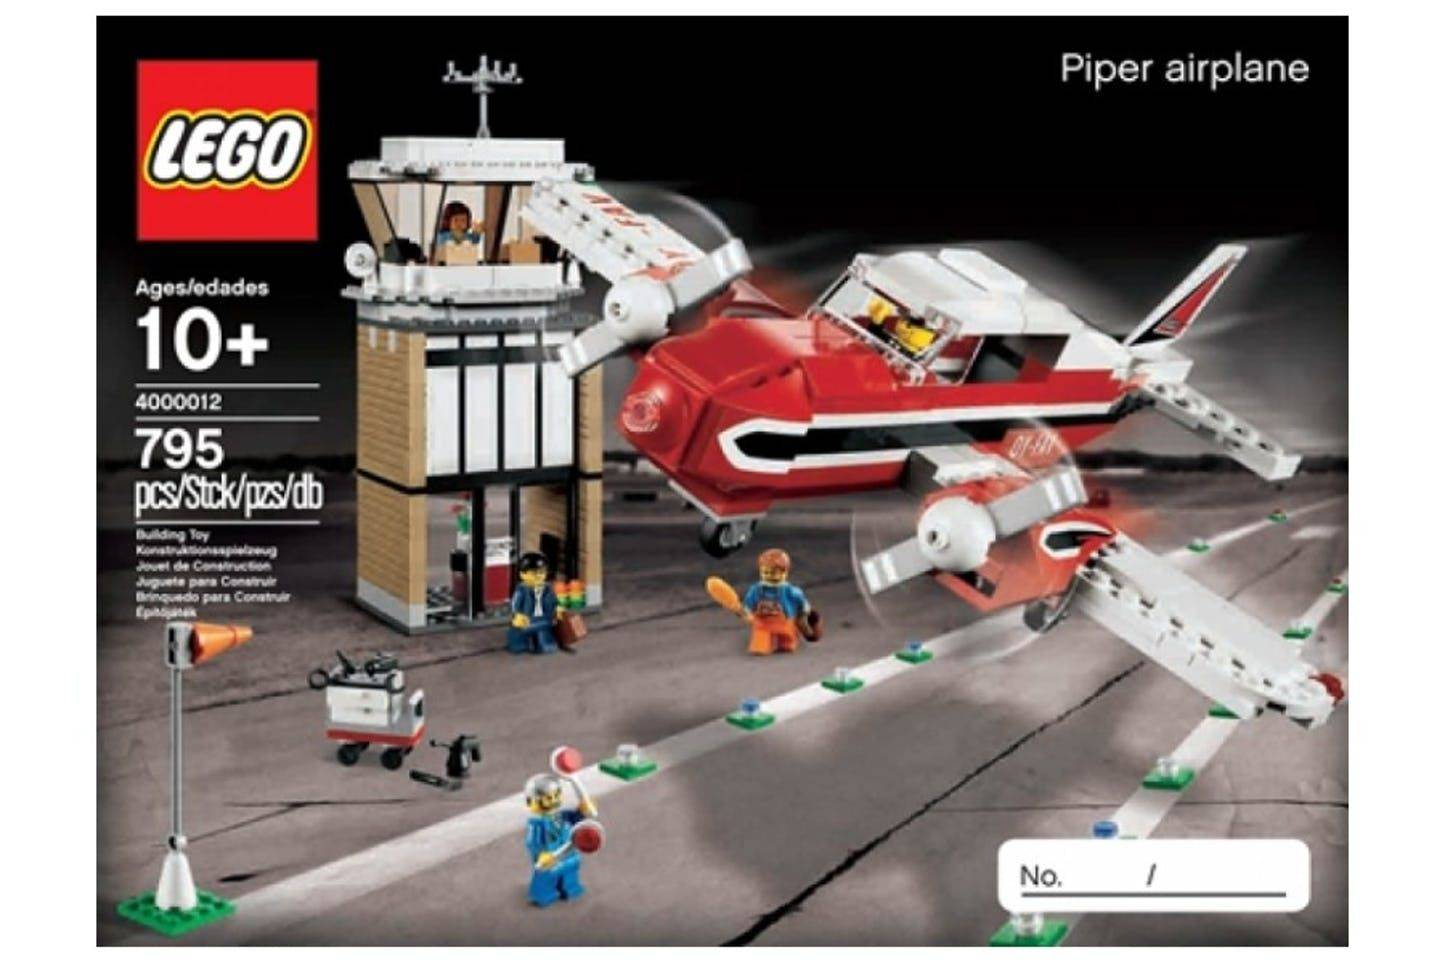 LEGO Piper Airplane